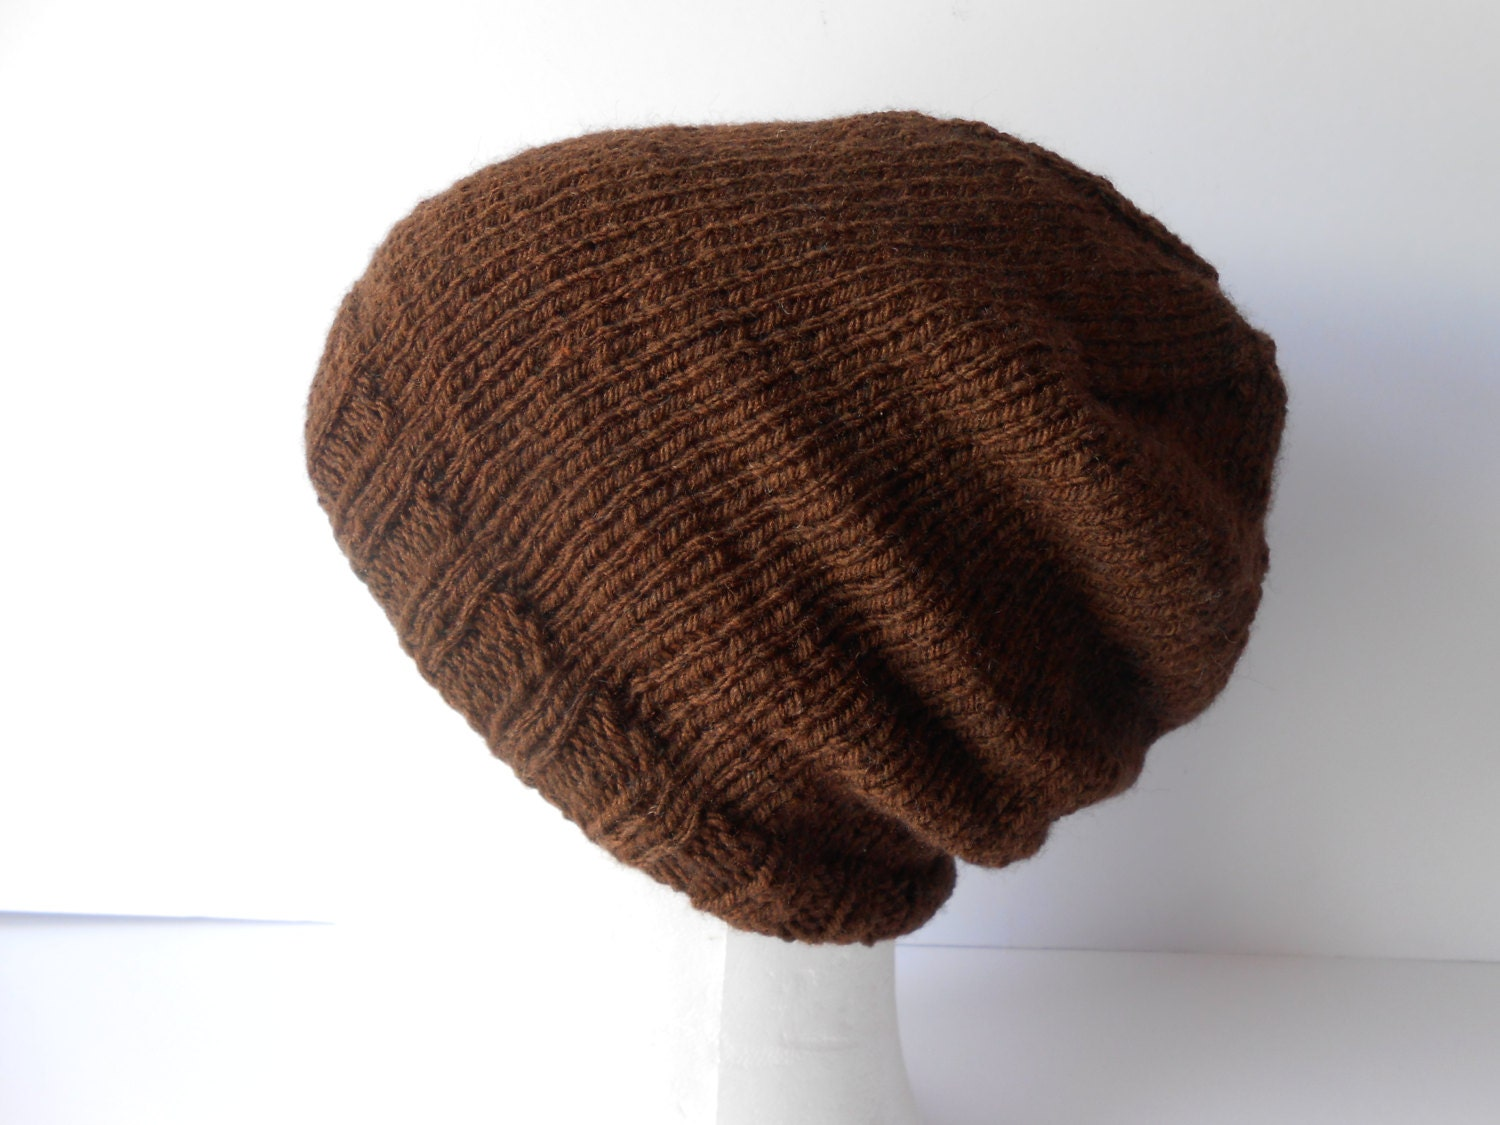 Shop online for Men's Beanies: Knit Caps & Winter Hats at membhobbdownload-zy.ga Find wool knits & cotton blends. Free Shipping. Free Returns. All the time.